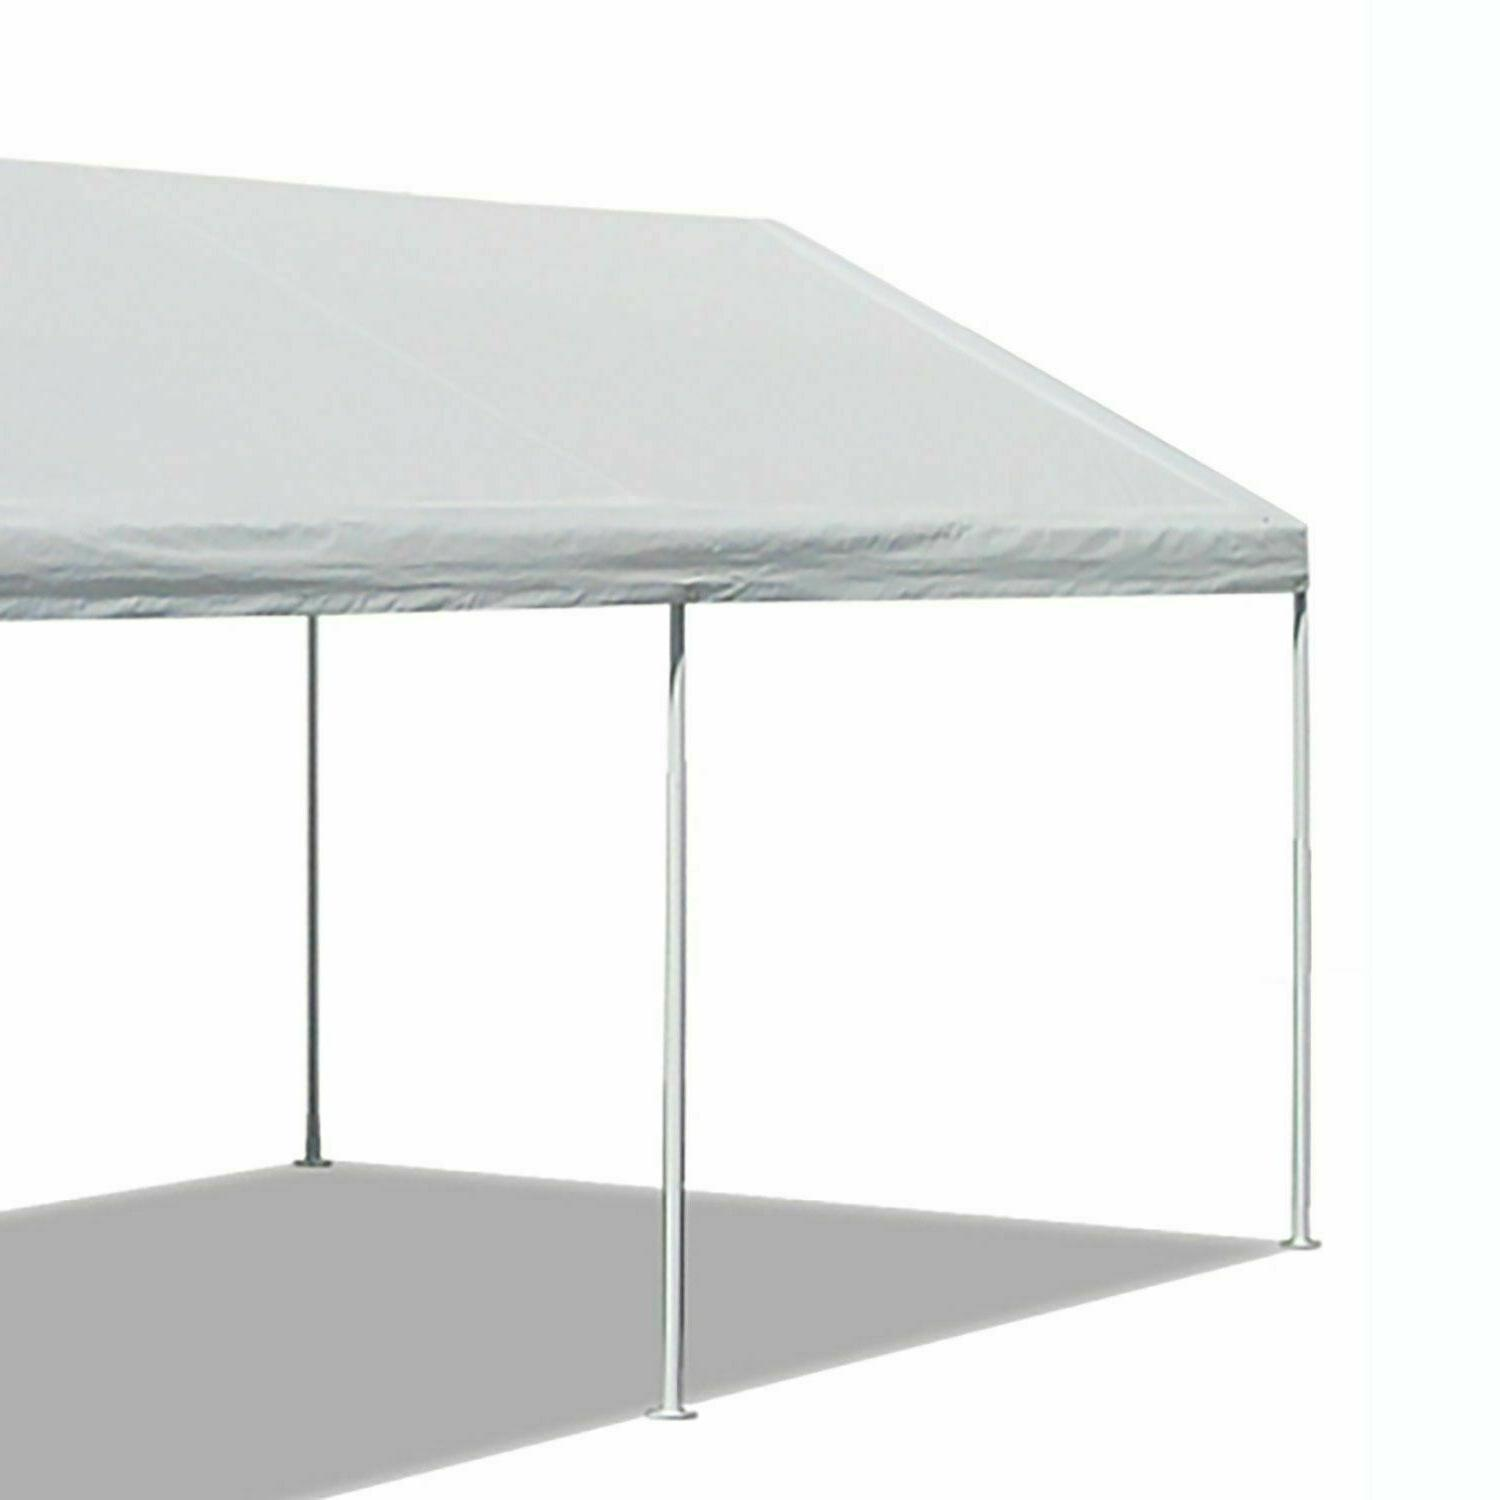 10' Heavy Duty Garage Tent Car Steel Frame